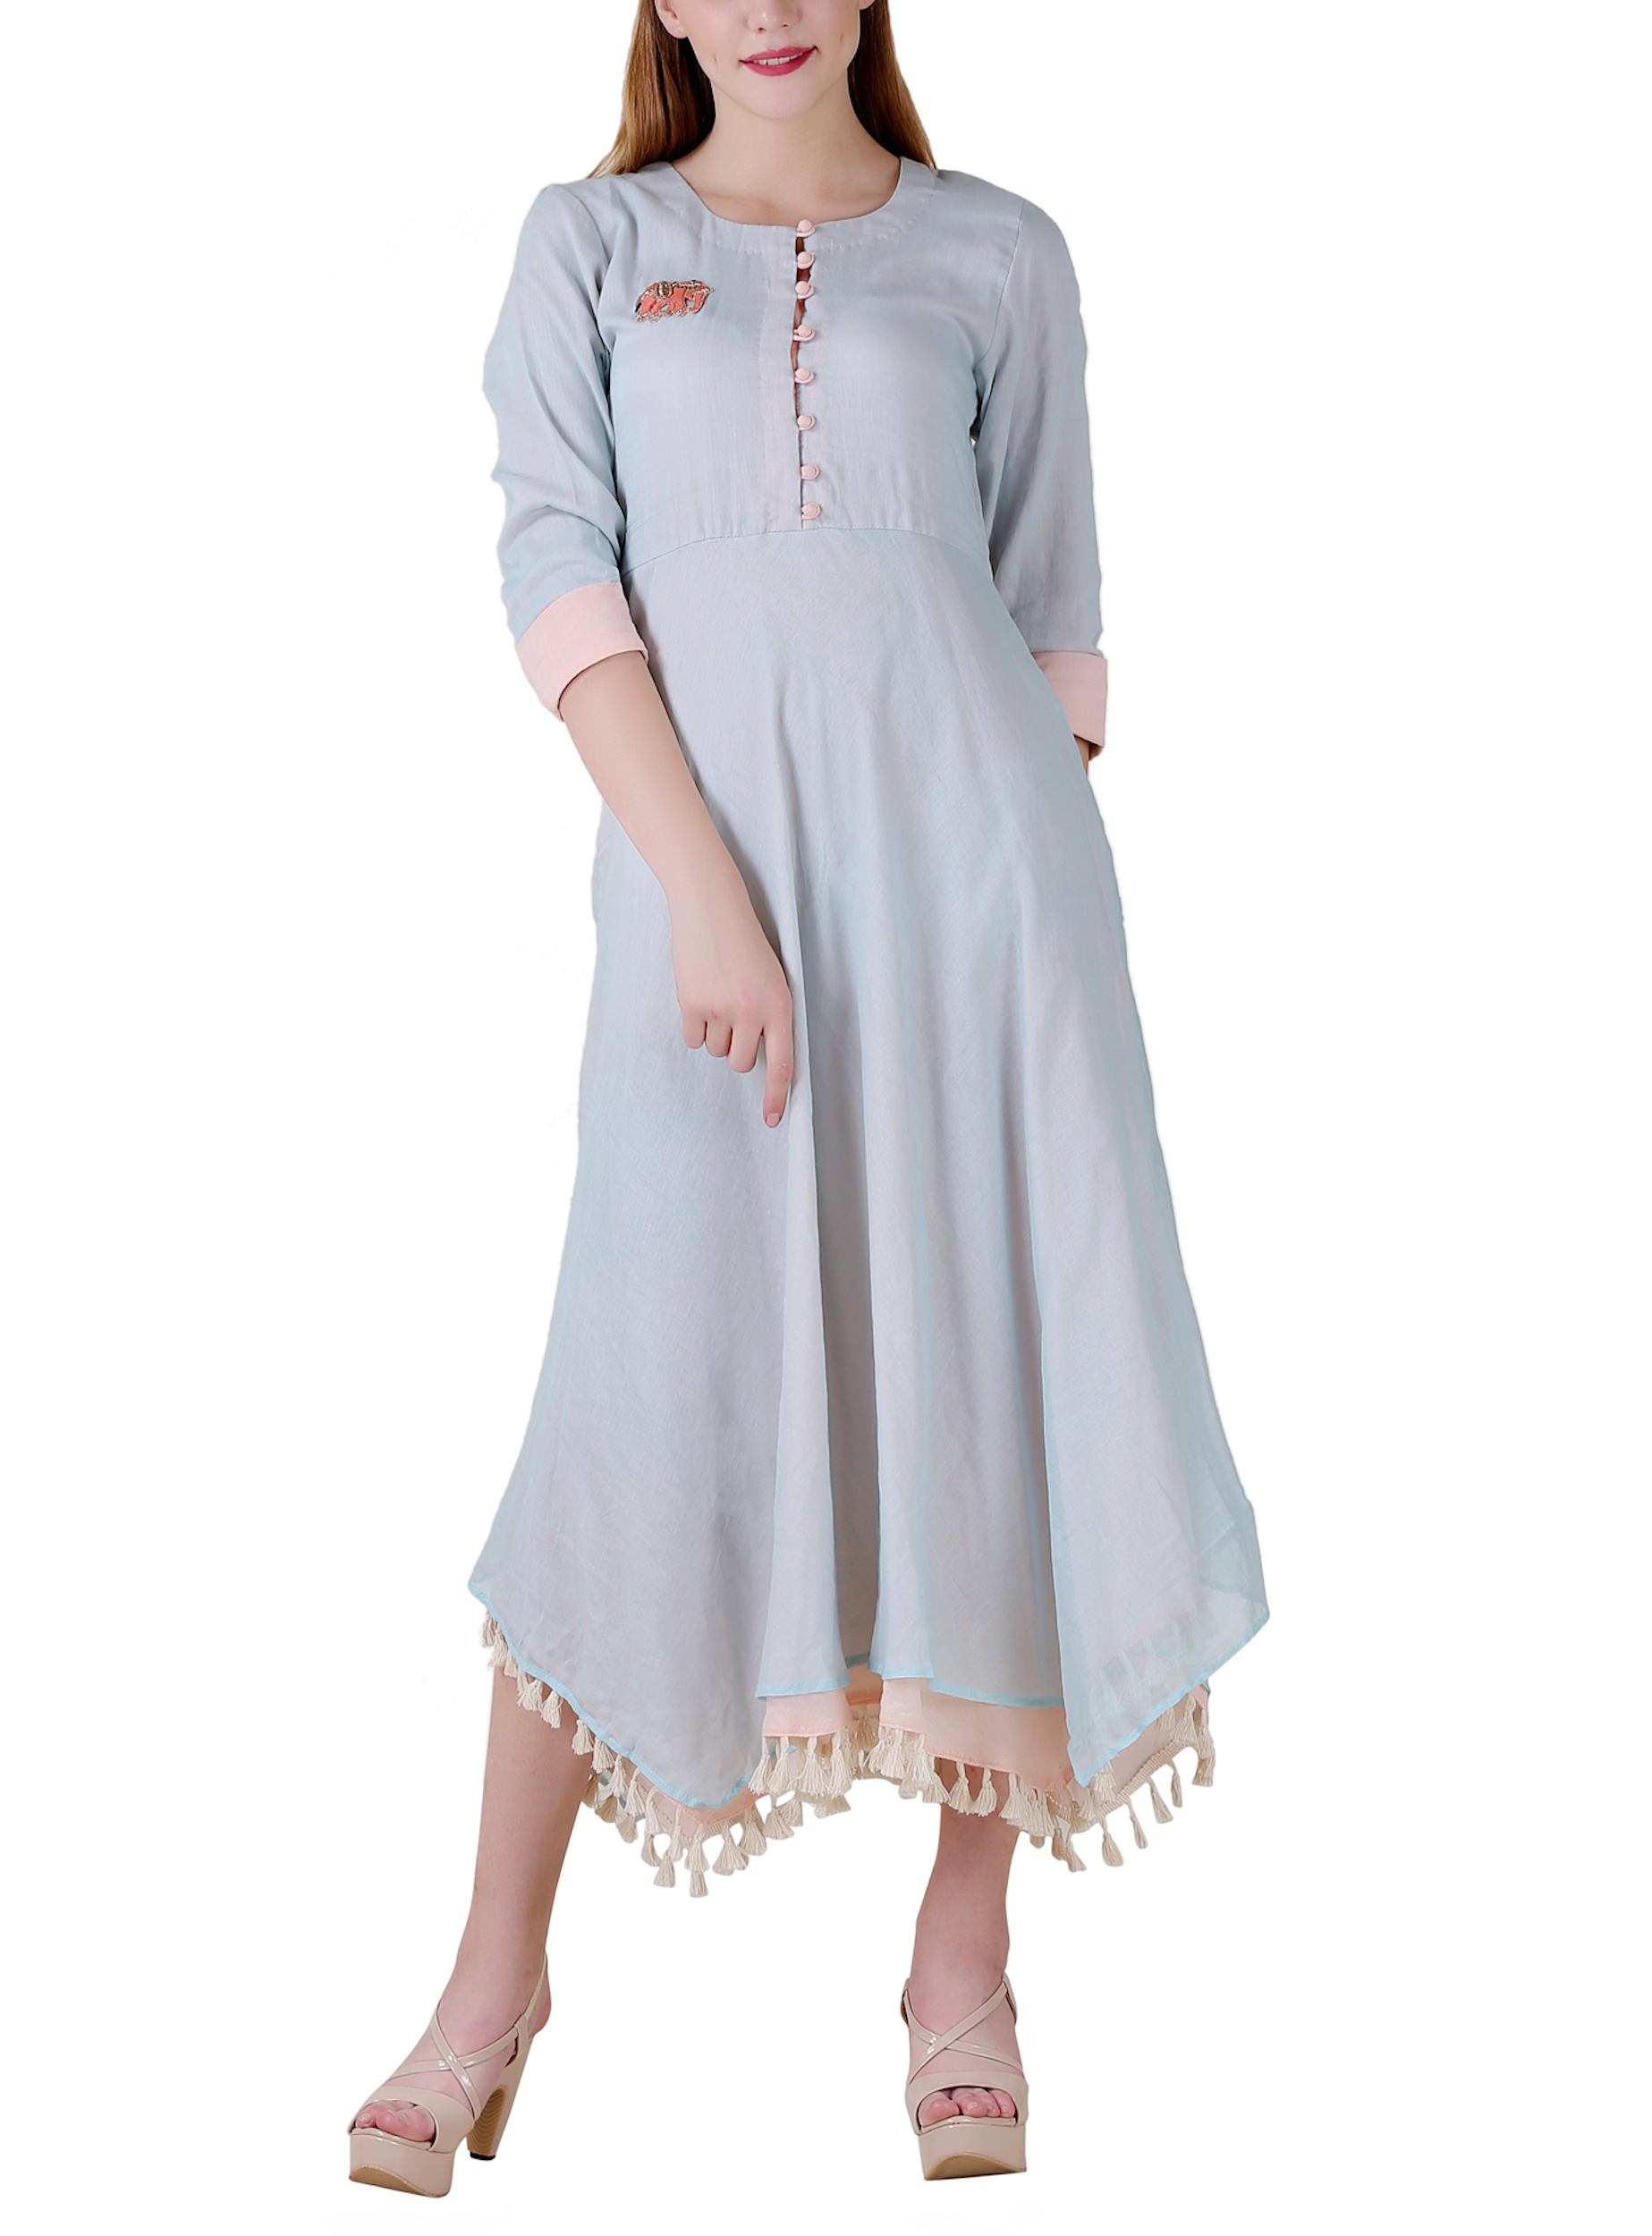 Pale blue high low double layered dress